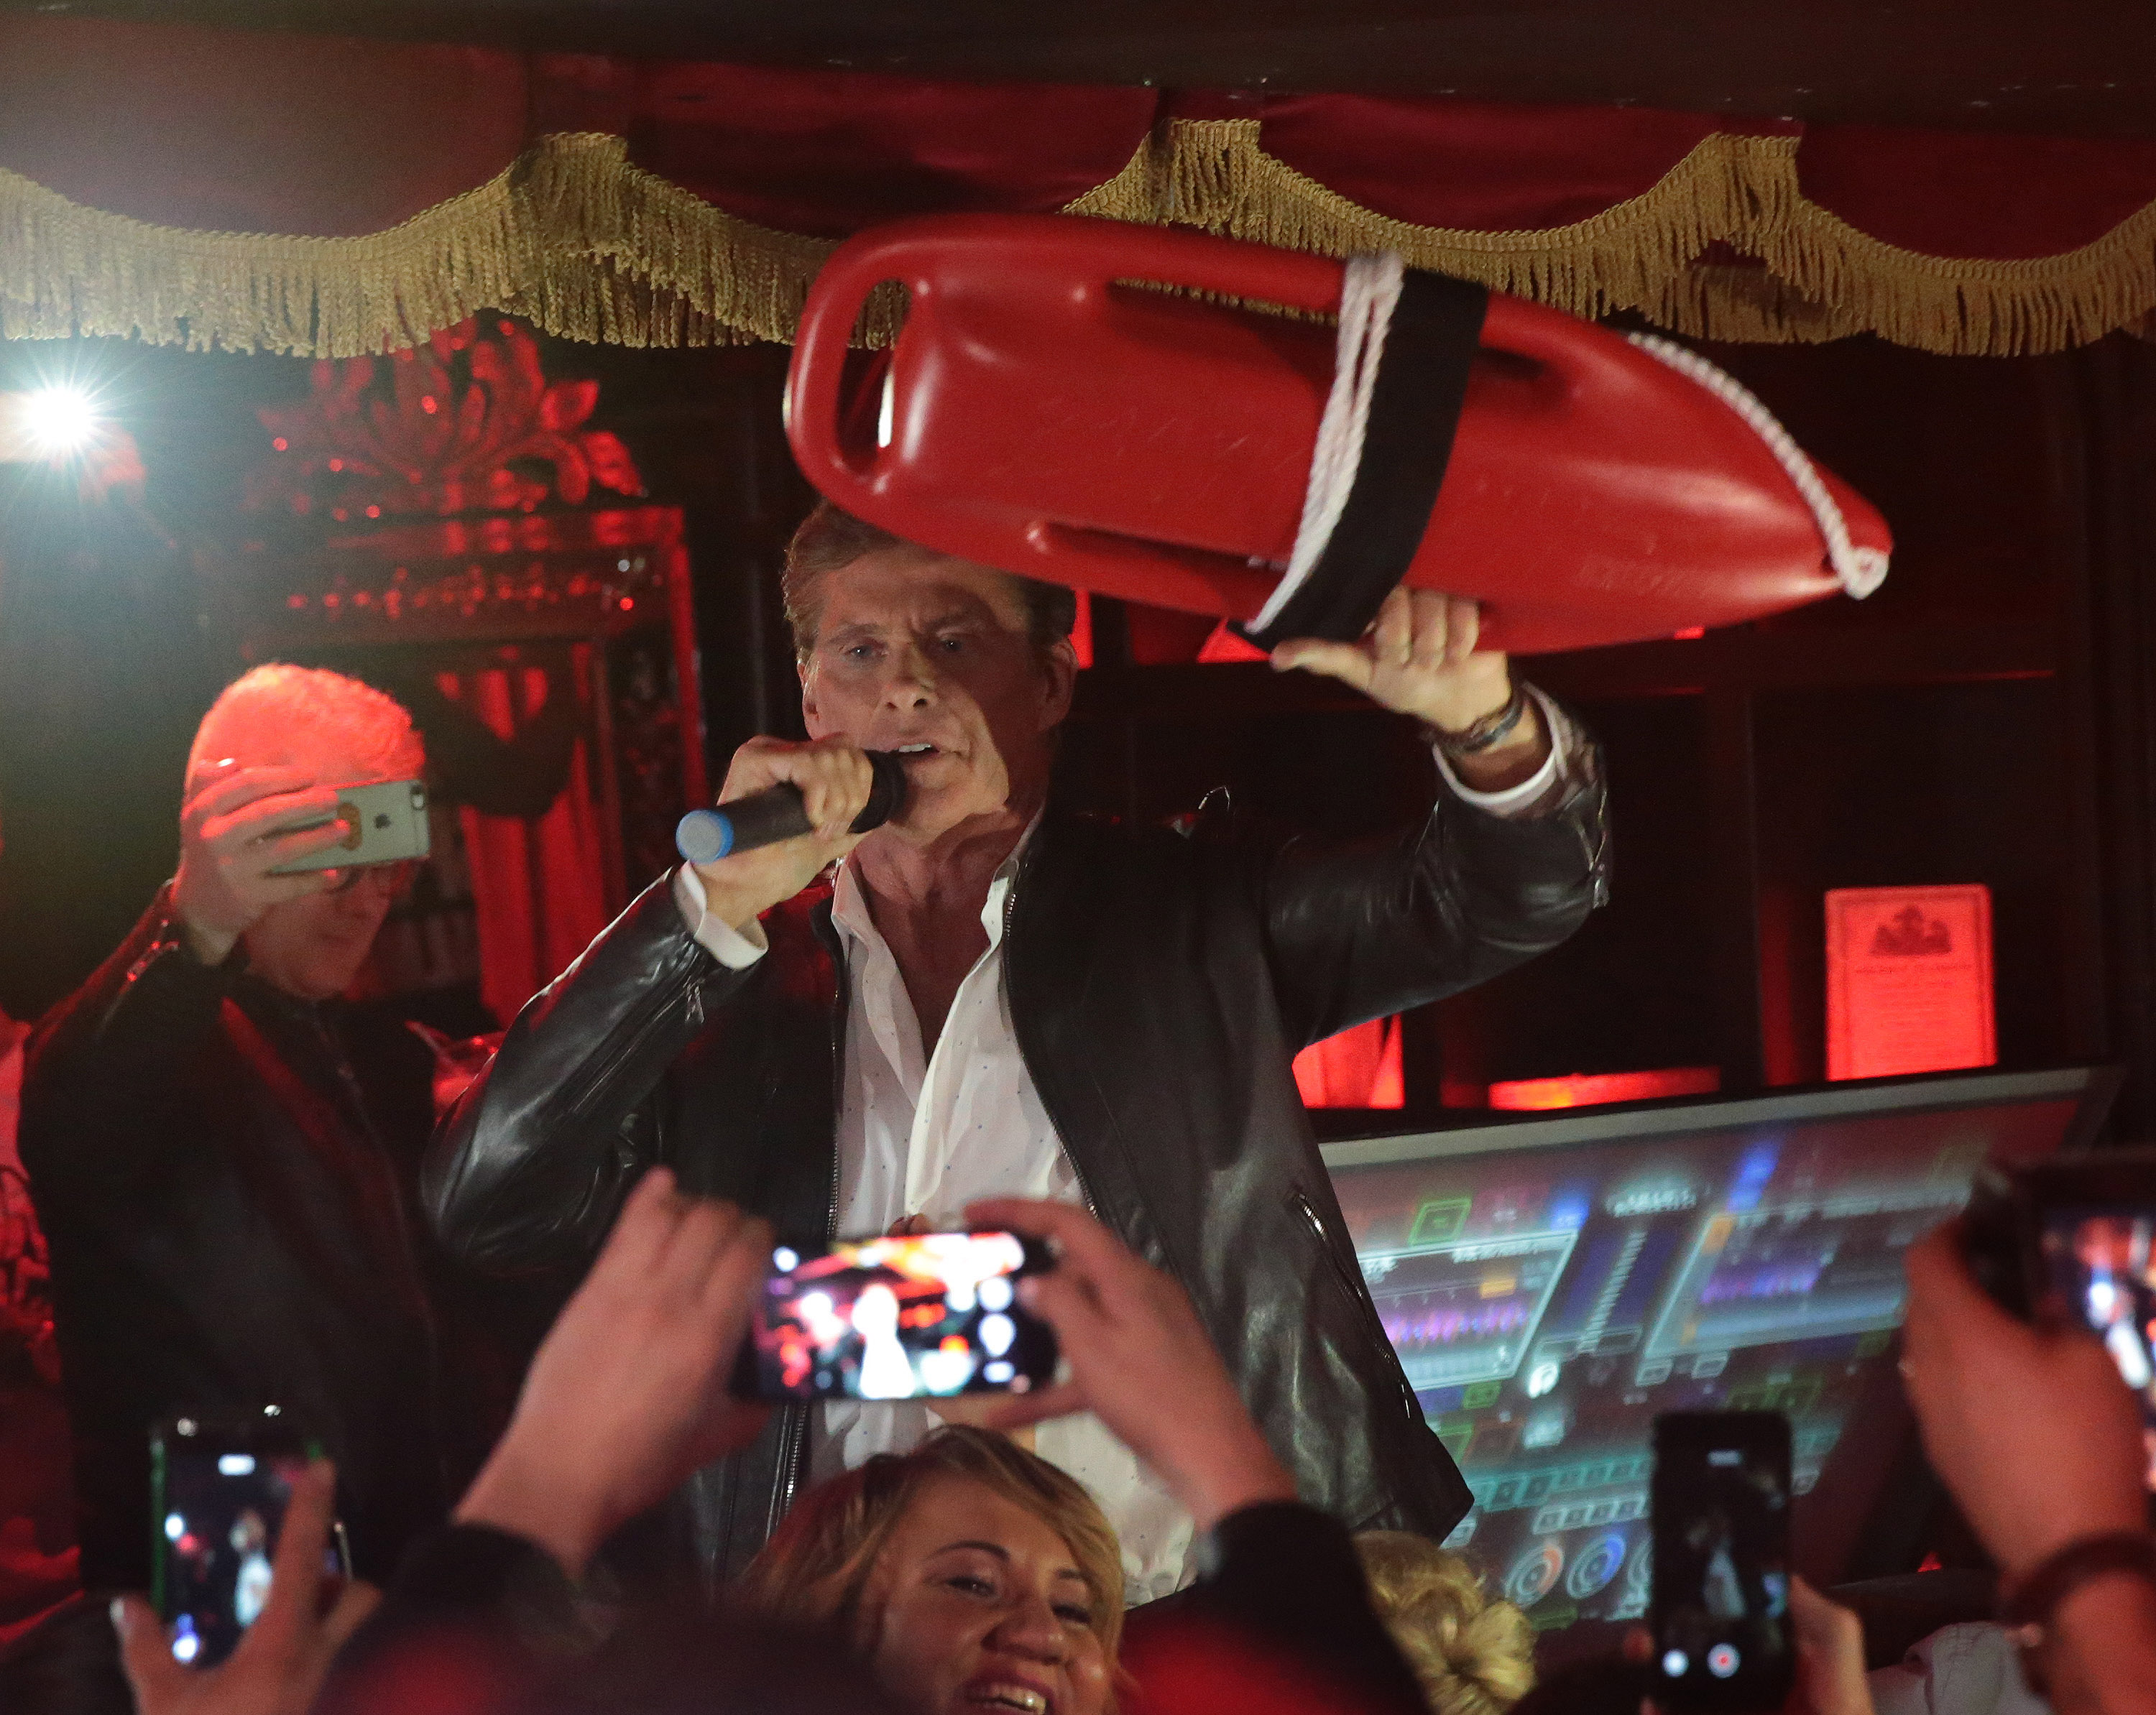 """David Hasselhoff takes to the mic and gives the packed crowd a rendition of the Baywatch Classic """"I'm Always Here"""". at The Gumball 3000 launch party at Ireland's Hippest Nightspot Lillies Bordello in Dublin Picture: Brian McEvoy no repro fee for one use The Hoff, DJ Afrojack, Grammy Award Winning Rapper Eve Party In Style at Gumball 3000 VIP Launch at Lillie's Bordello, Dublin Ireland's hippest hotspot Lillie's hosted the official VIP launch party on Saturday night, of the world's most famous motoring event as the 2016 Gumball 3000 rolled into the fair city. The Hoff- aka David Hasselhoff, celeb DJ Afrojack, Grammy Award winning rapper Eve and Gumball 3000 race founder Maximillion Cooper were among the celebrities partying at Lillie's Bordello, Dublin over the weekend. The Hoff took to the mic and gave the packed crowd a rendition of the Baywatch Classic """"I'm Always Here"""". The cars were paraded in Merrion Square at high noon on Saturday 30th April. Before the race began on Sunday 1st May as the flag came down as the competitors drove to Edinburgh via Belfast to begin a 3000-mile journey across Europe to the edge of Asia. Twitter: @lilliesdublin #LilliesDublin Facebook: facebook.com/lilliesdublin Instagram: @lilliesdublin Editors Notes 30 nationalities are represented driving 120 incredible vehicles from vintage classics to modern day hypercars including Pagani, Bugatti, Ferrari, Lamborghini, Porsche, Aston Martin, Koenigsegg, Jaguar, Bentley and Rolls Royce. 100 million followers on social media and 60 million television viewers will be glued to the action as the 2016 Gumball 3000 rally traverses across two continents and over a dozen countries."""